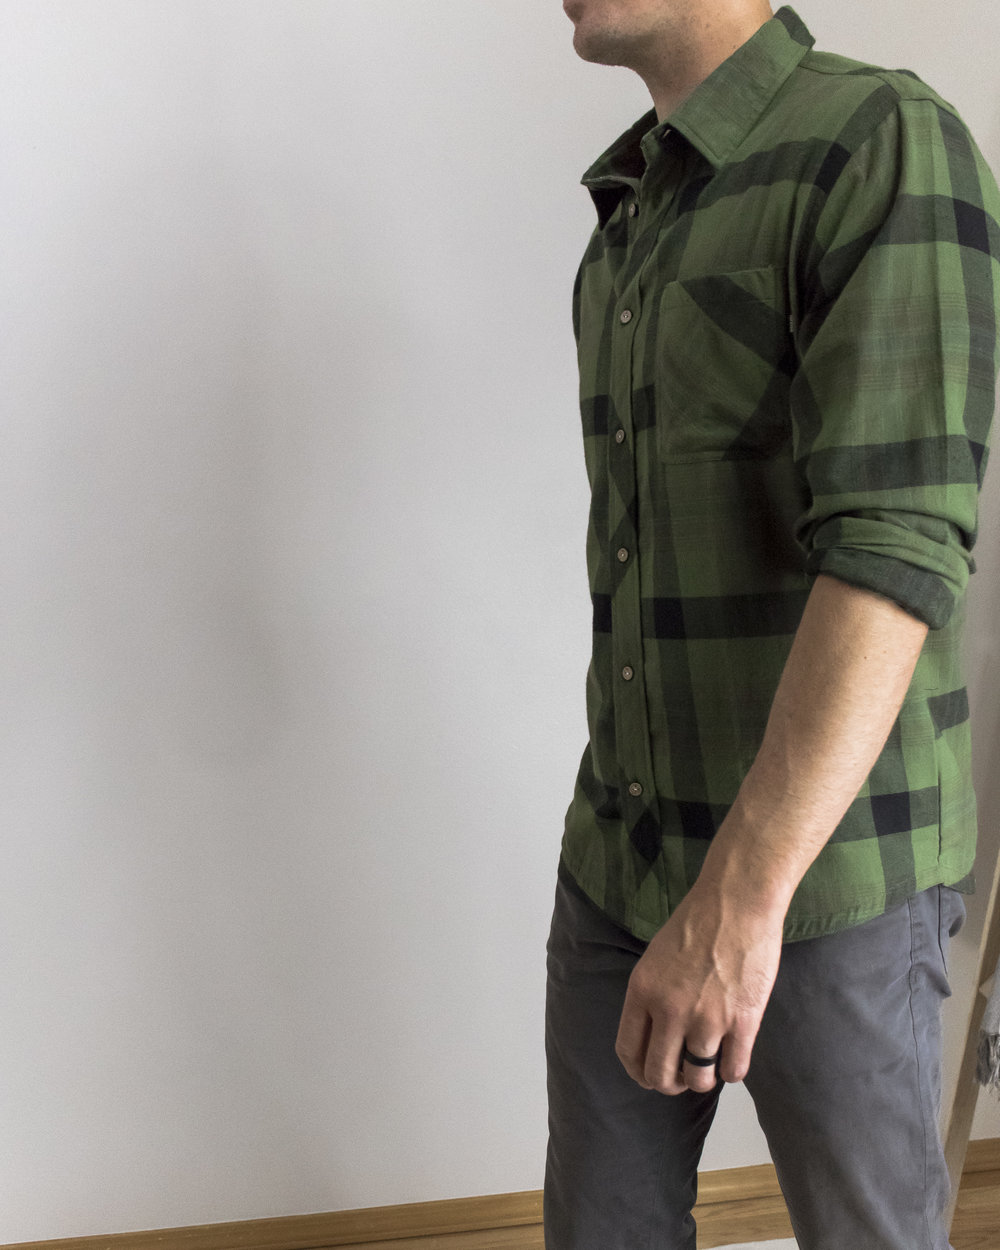 the PLAID FLANNEL is perfect for a casual day at the office and comfortable enough for a camping trip with your buddies. the woven cotton blend plaid is warm and durable and meant to be worn over and over again. -